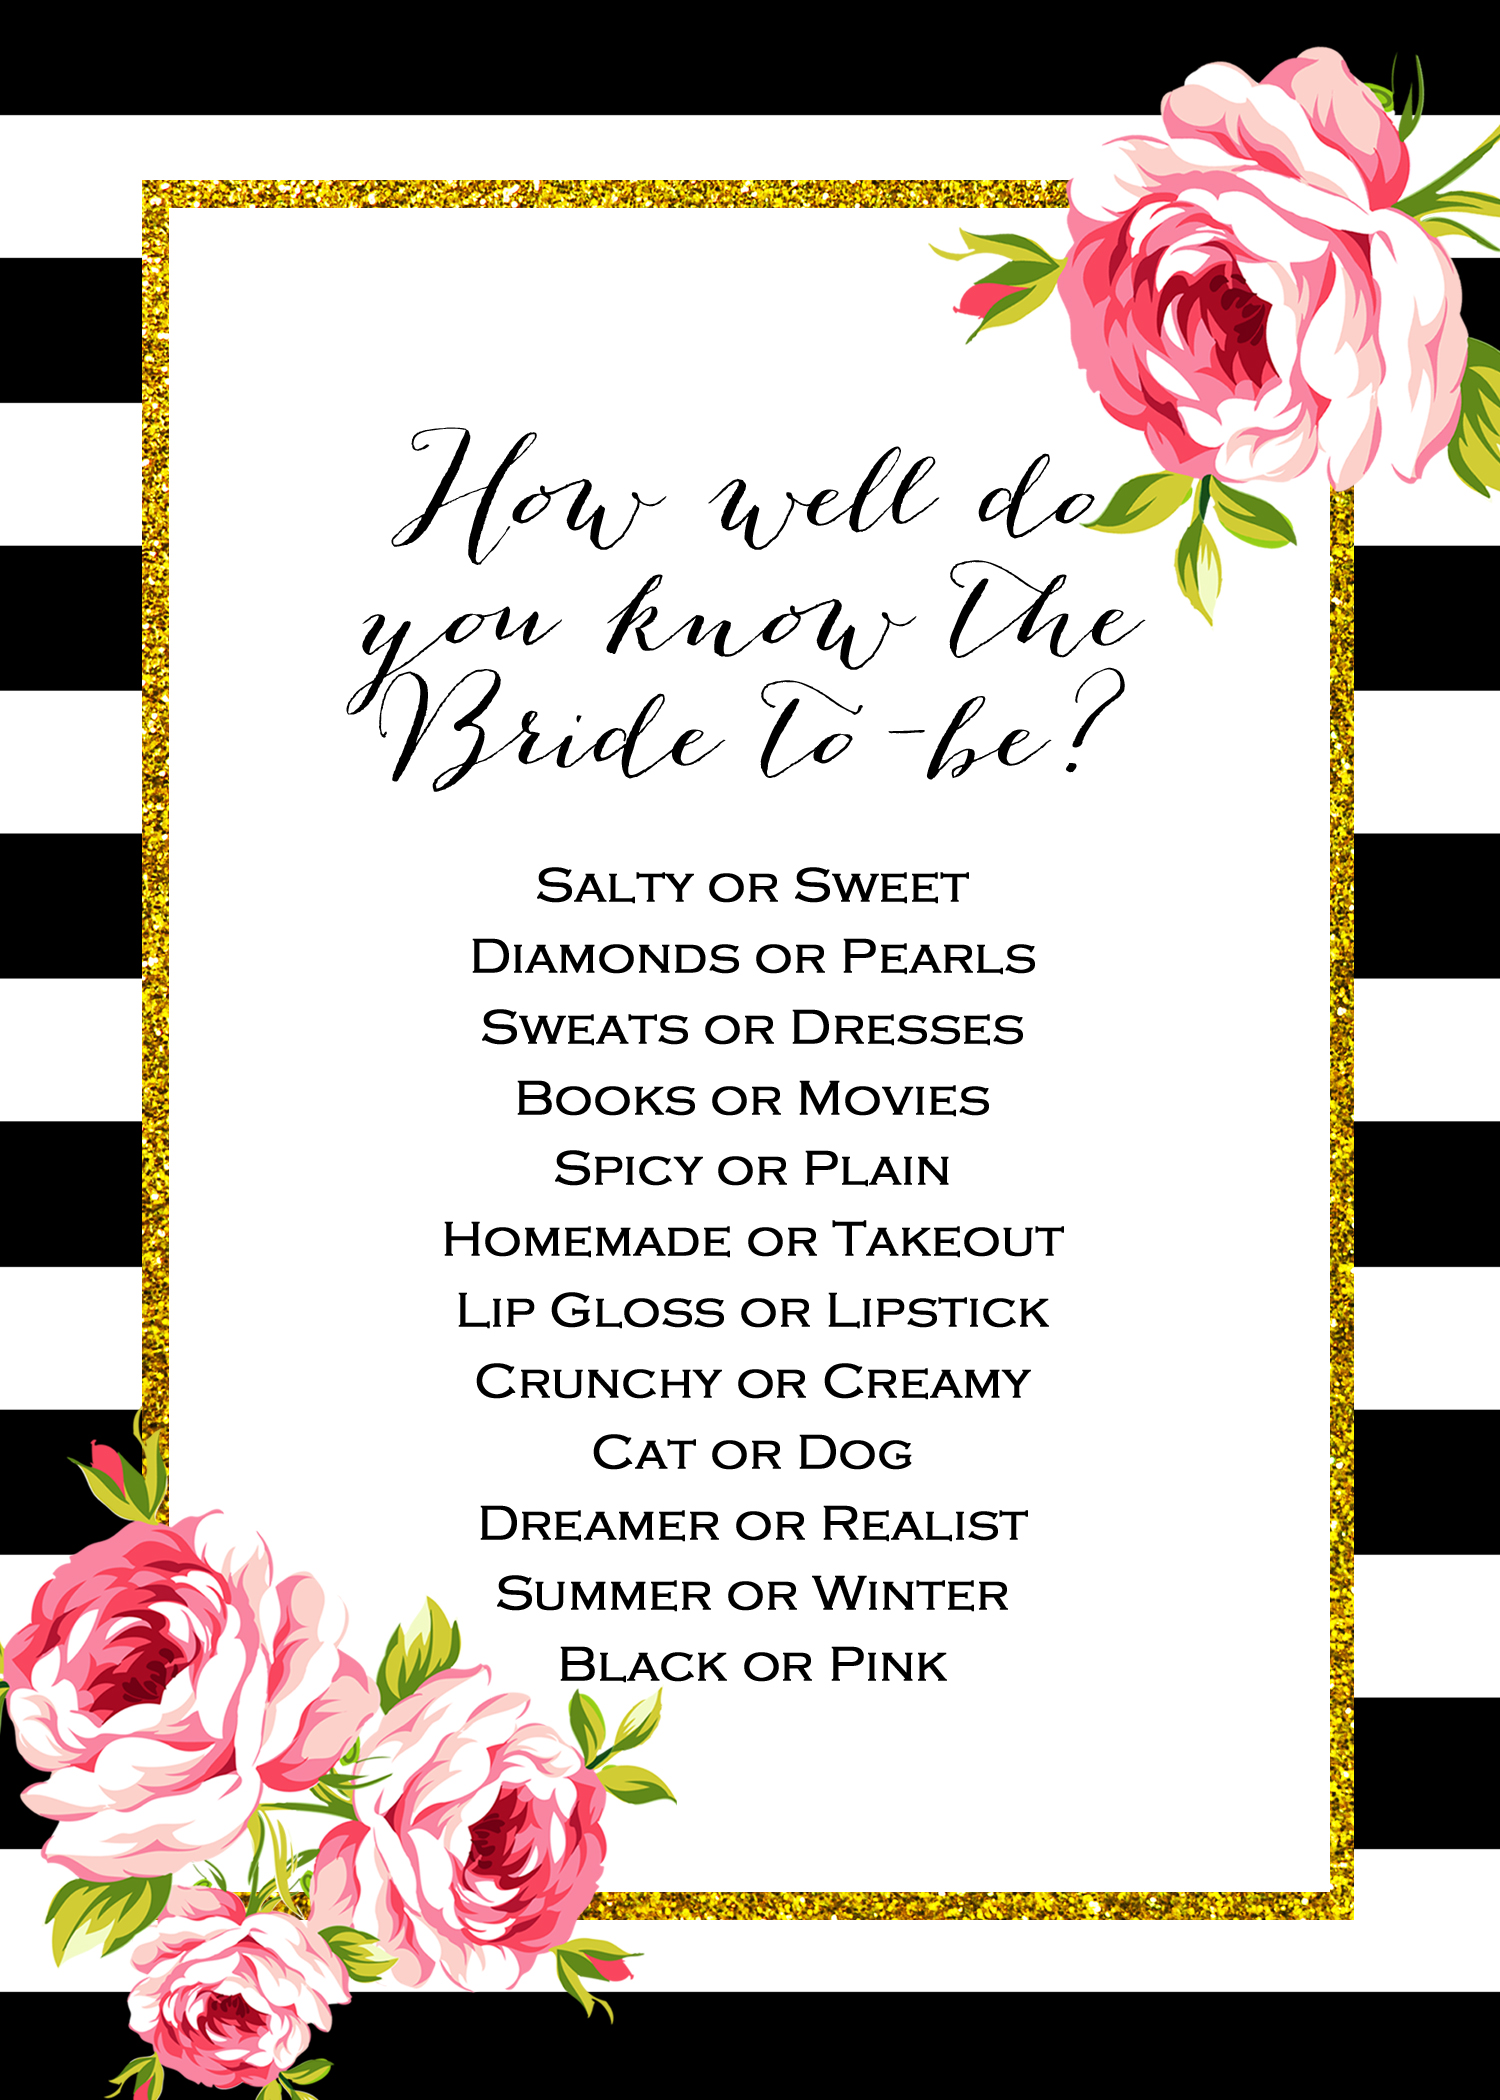 90 Bridal Shower Games How Well Do You Know The Bride